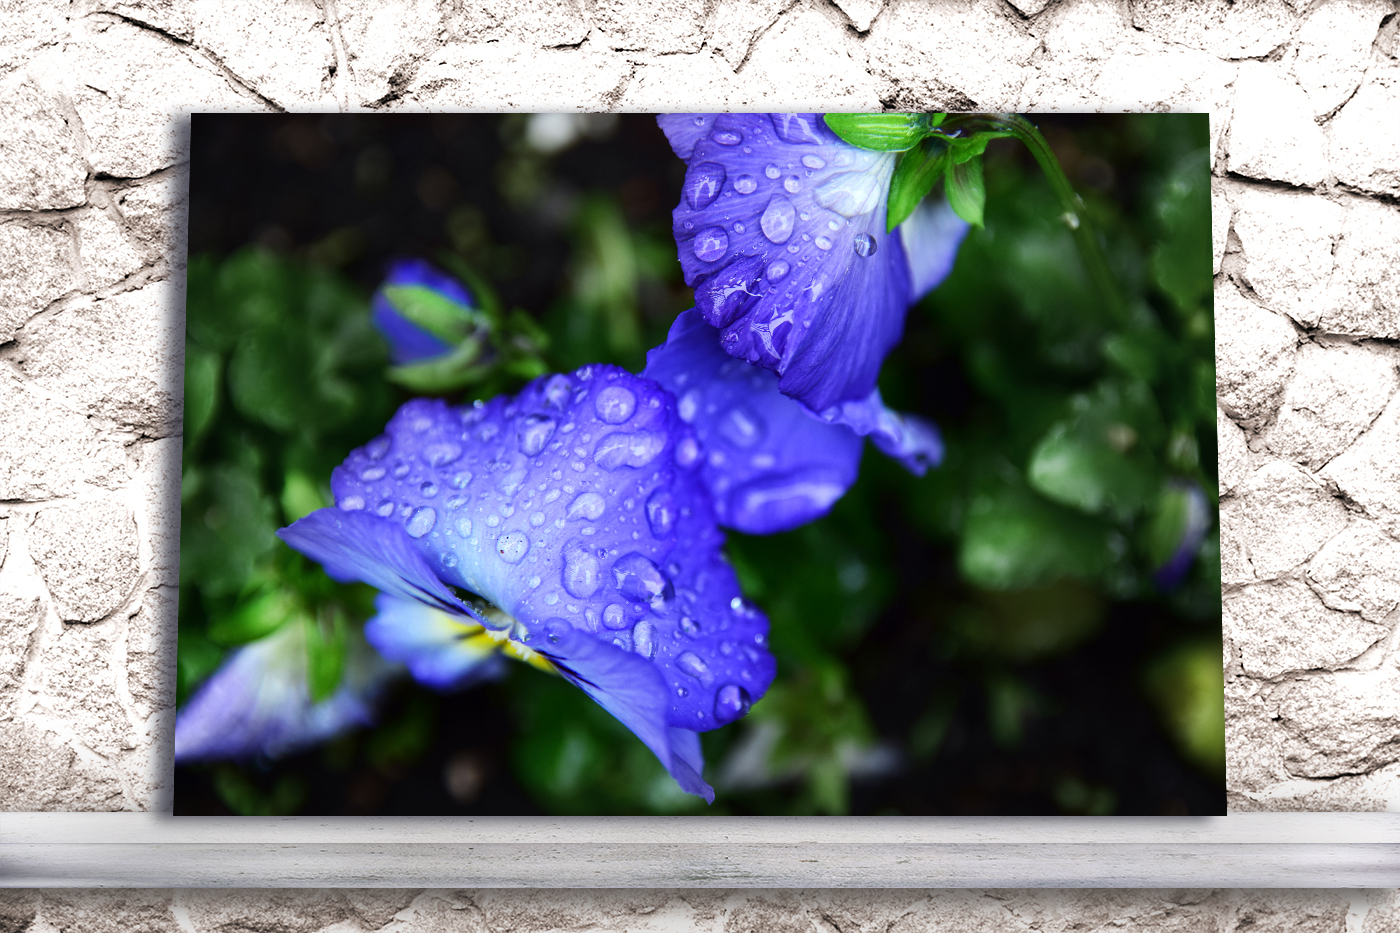 Nature photo, floral photo, spring photo, pansies photo example image 4